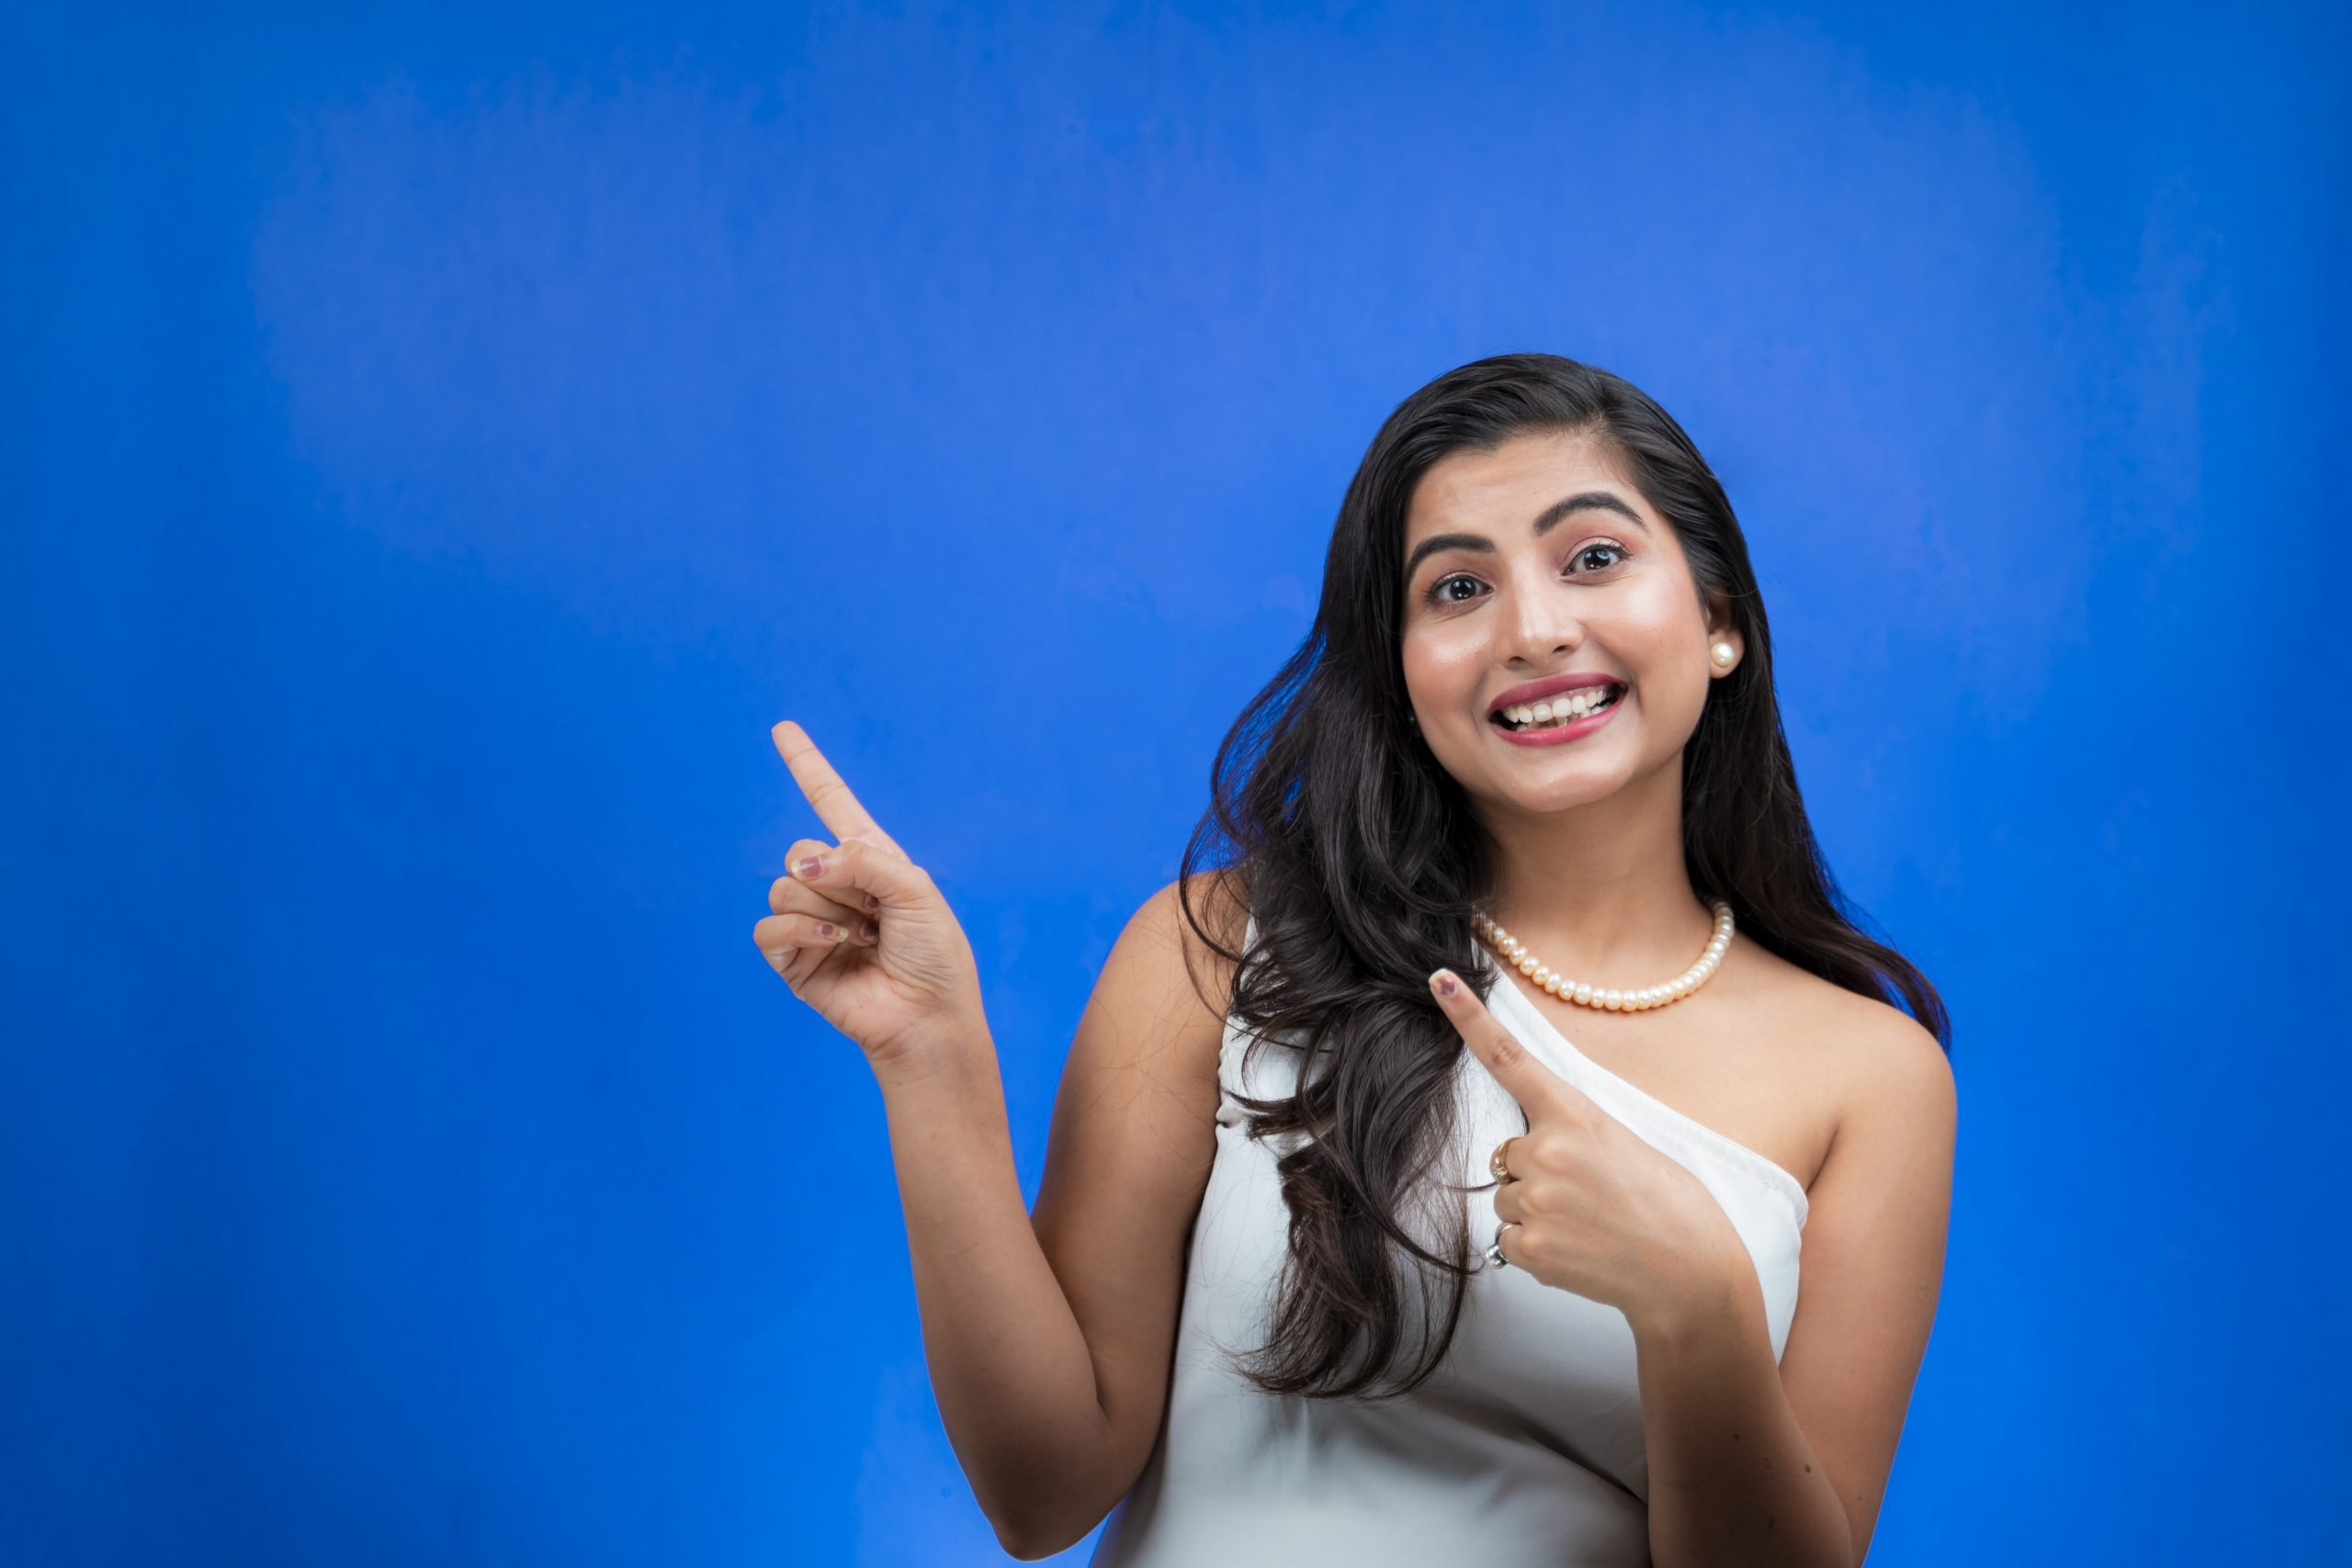 Happy young woman smiling and pointing sideways